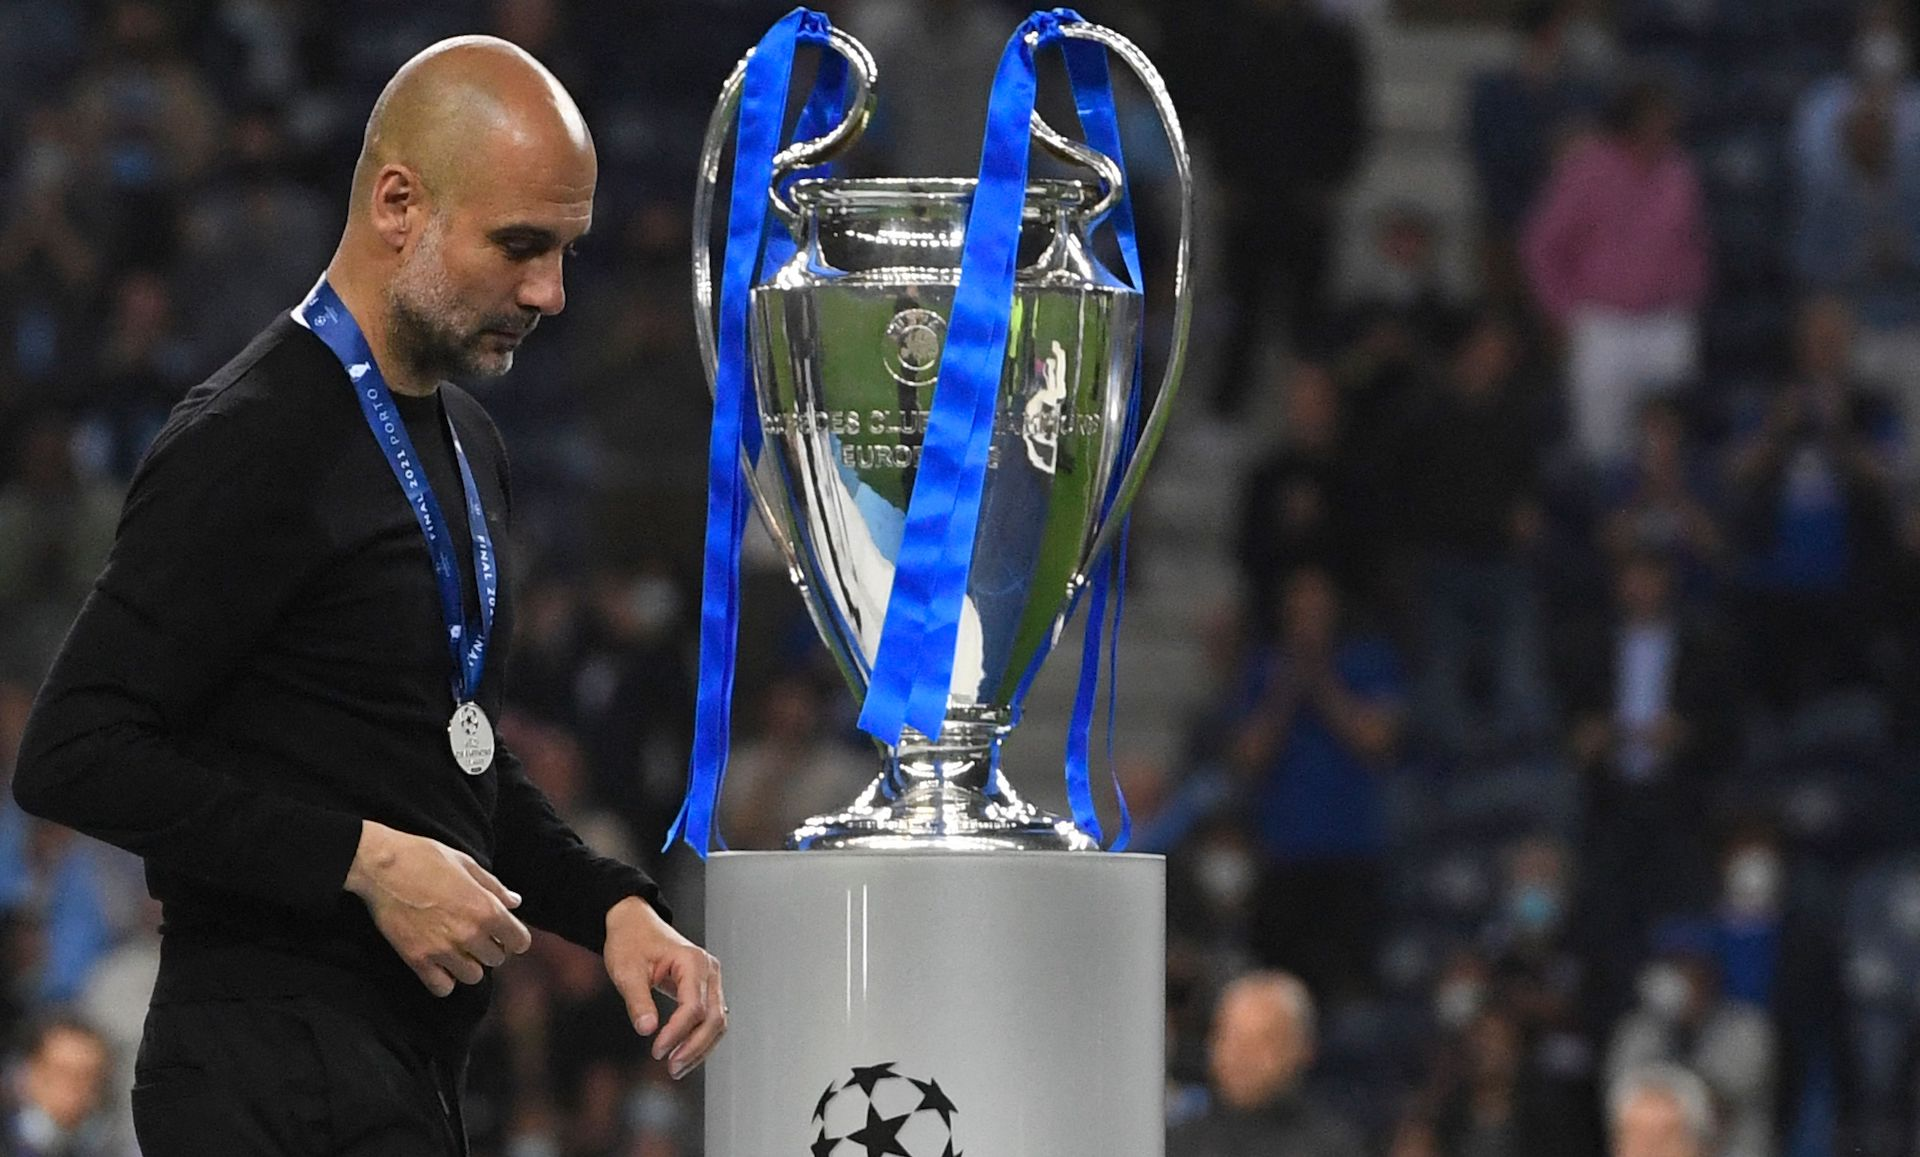 Guardiola slammed for 'madness' Champions League decision as Hamann blames Manchester City boss for Chelsea loss